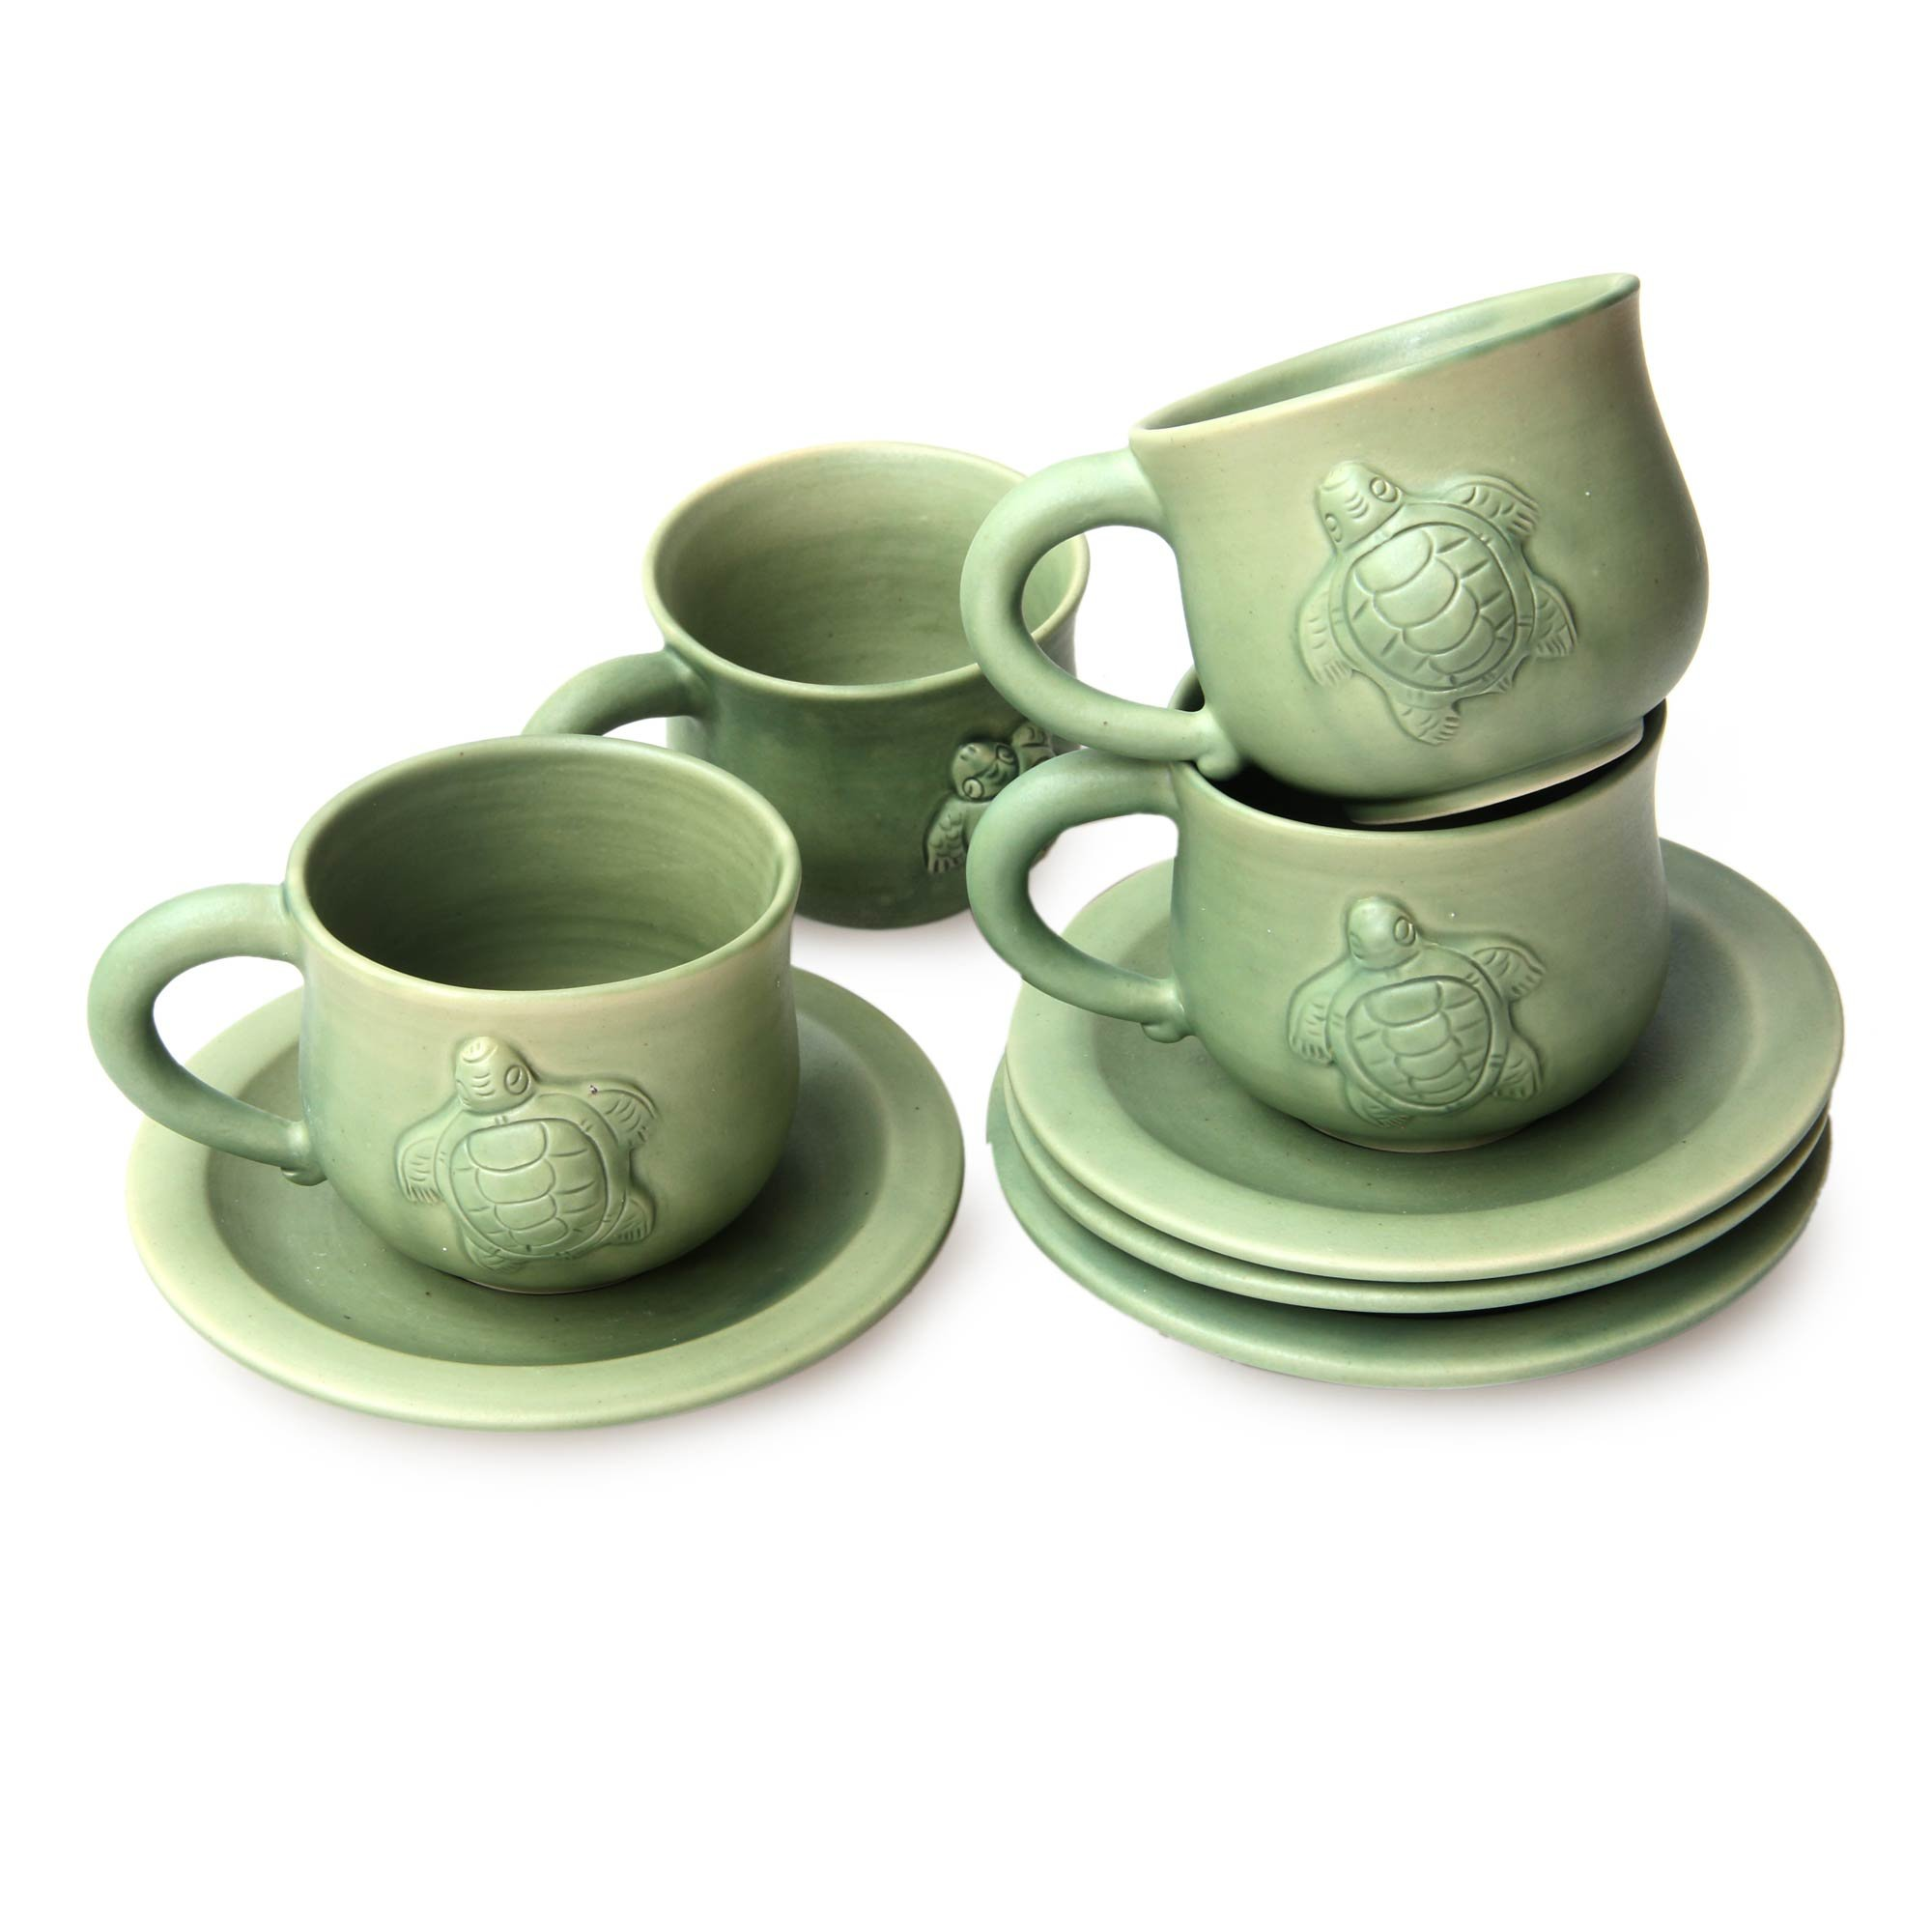 NOVICA Decorative Turtle Action' (Set for 4) Ceramic Cups and Saucers by NOVICA (Image #1)